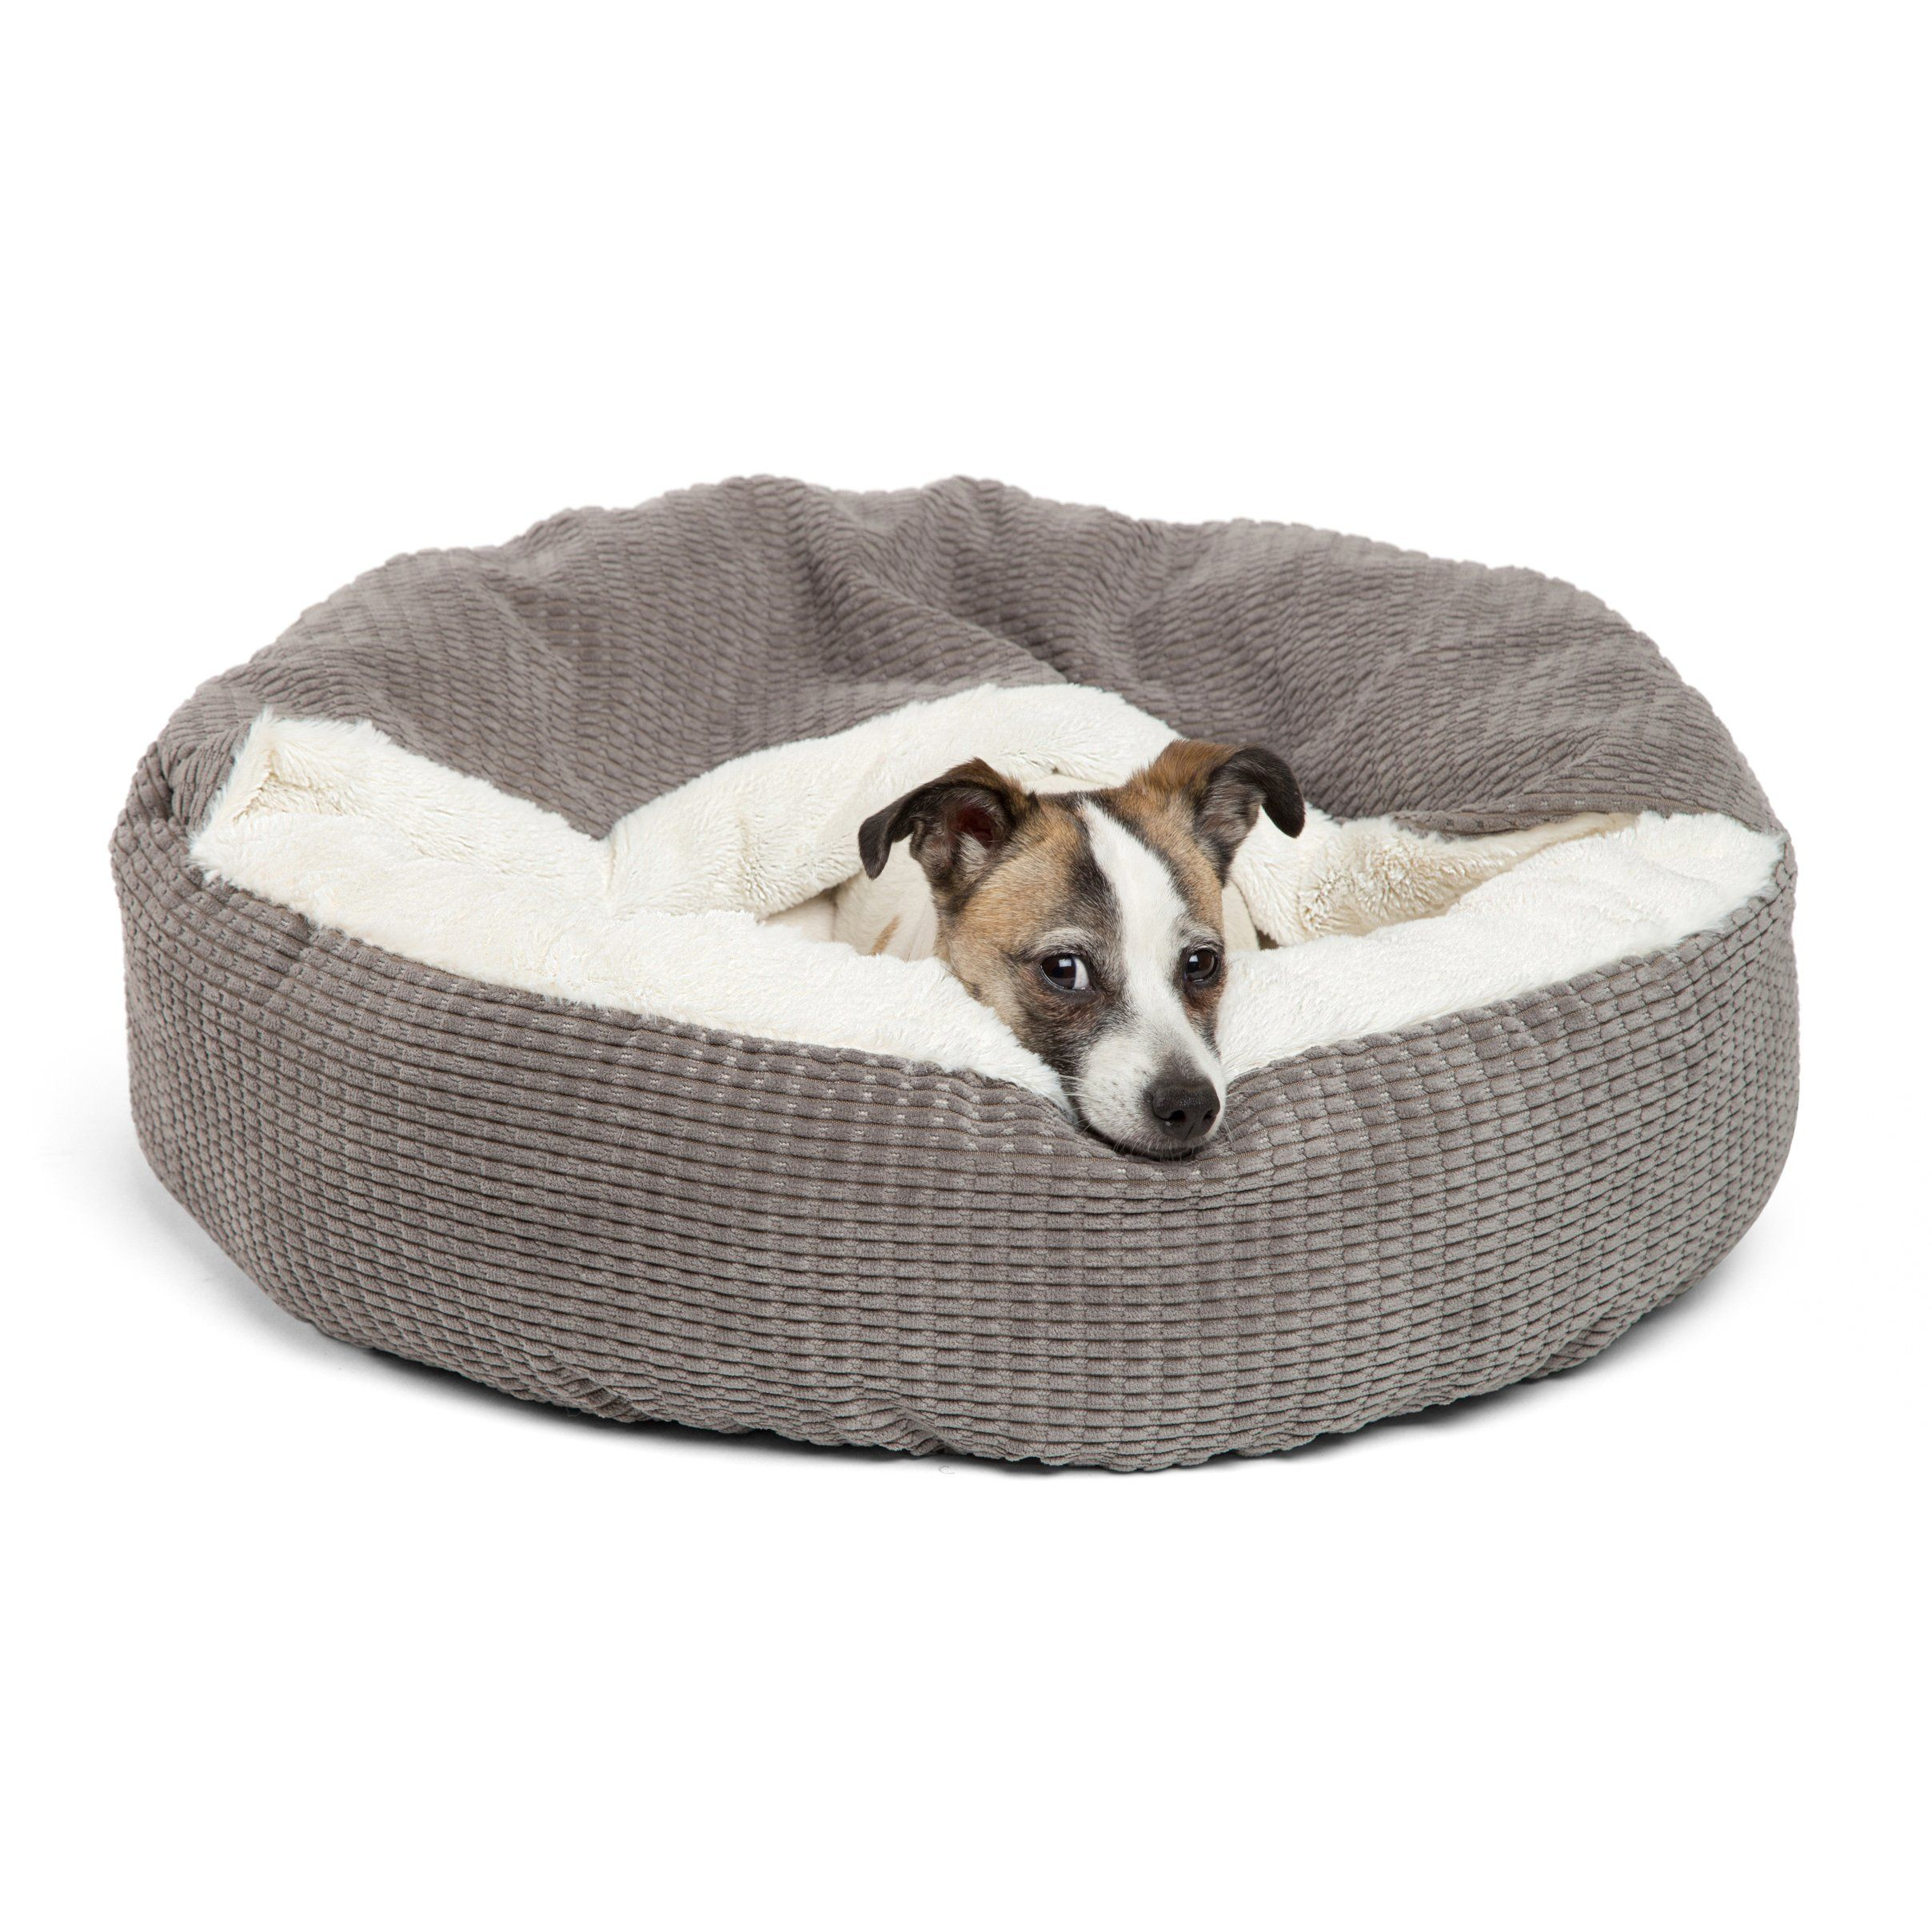 Best Friends By Sheri Cozy Cuddler C Luxury Dog And Cat Bed With Blanket For Warmth And Security Offers Head Neck And Joint Sup Cat Bed Dog Bed Luxury Dog